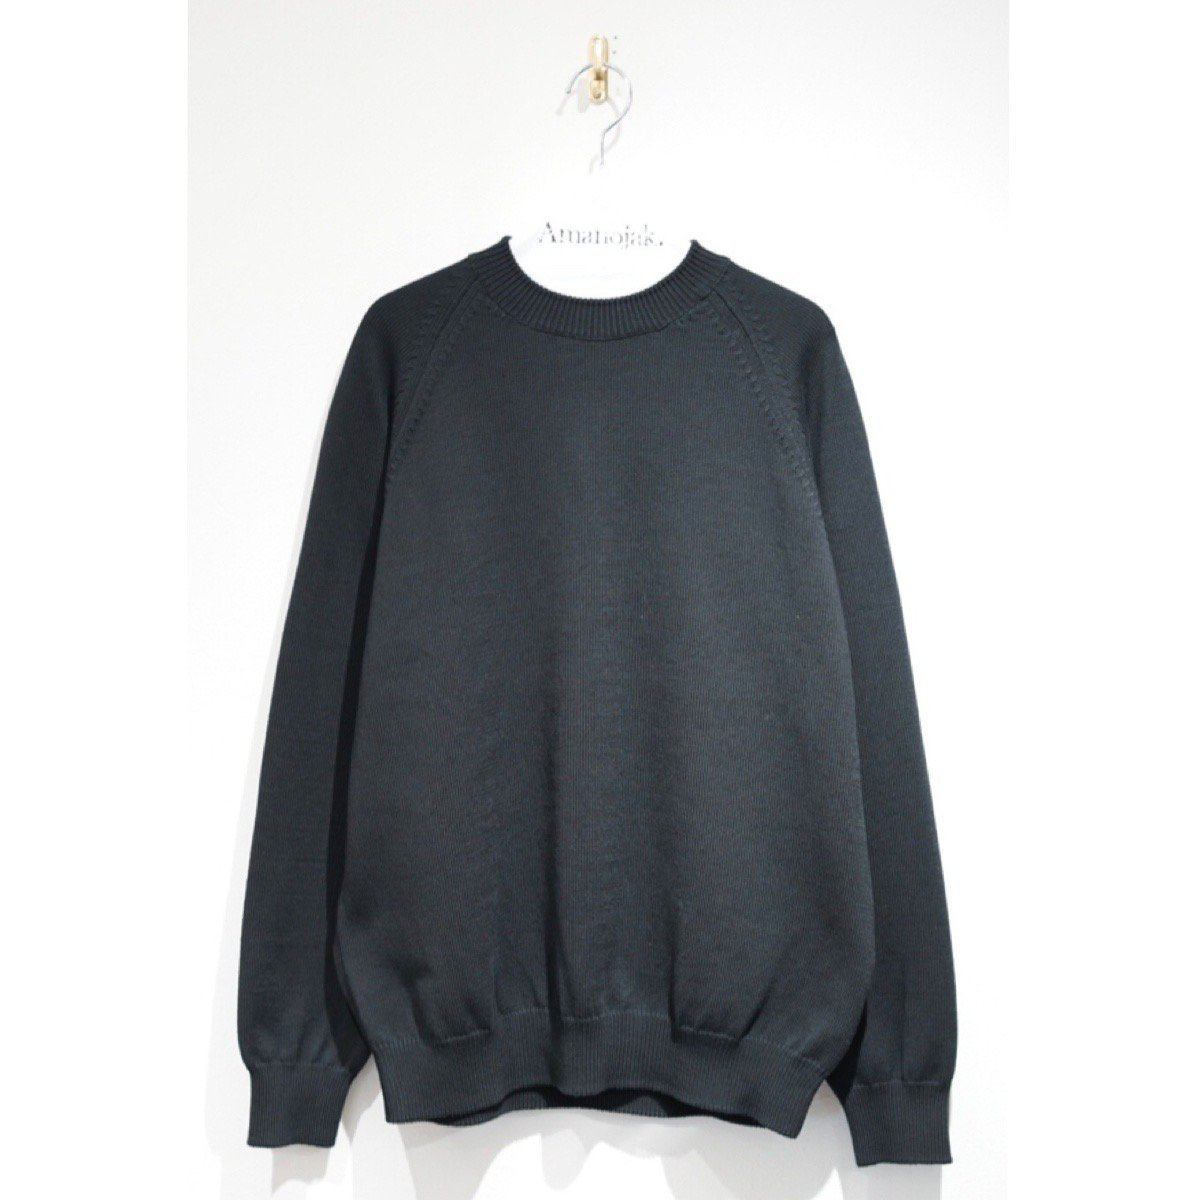 BATONER-AGING COTTON RAGLAN SLEEVE CREW NECK BLACK